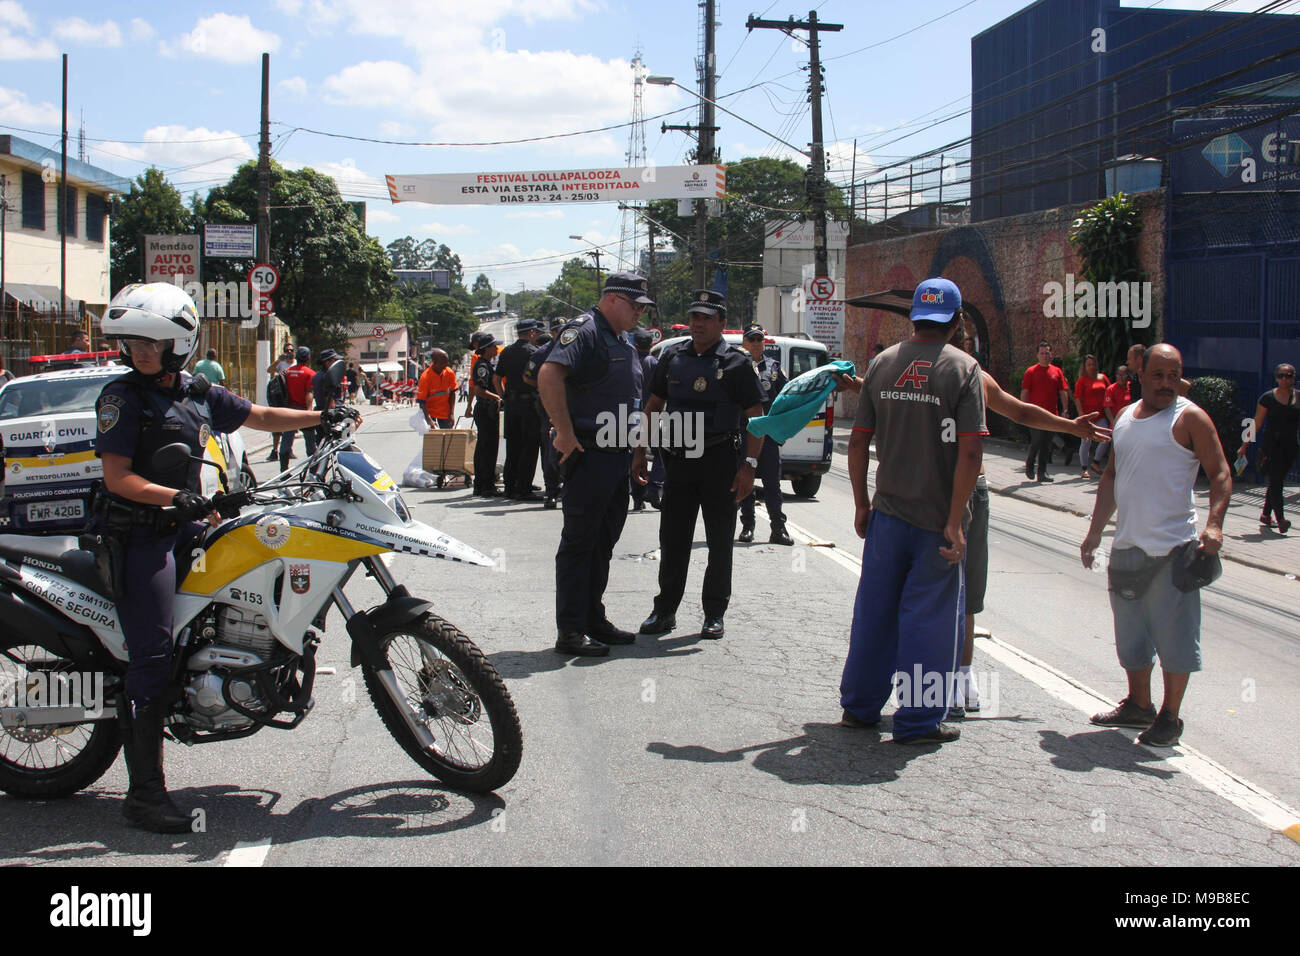 Brazil. 24th Mar, 2018. Local police confiscates foods, drinks and products during the event at Jose Carlos Pace Autodrome Interlagos. There were many policemen with their motorcycles, cars at the local to maintain order. Credit: Niyi Fote/Pacific Press/Alamy Live News Stock Photo